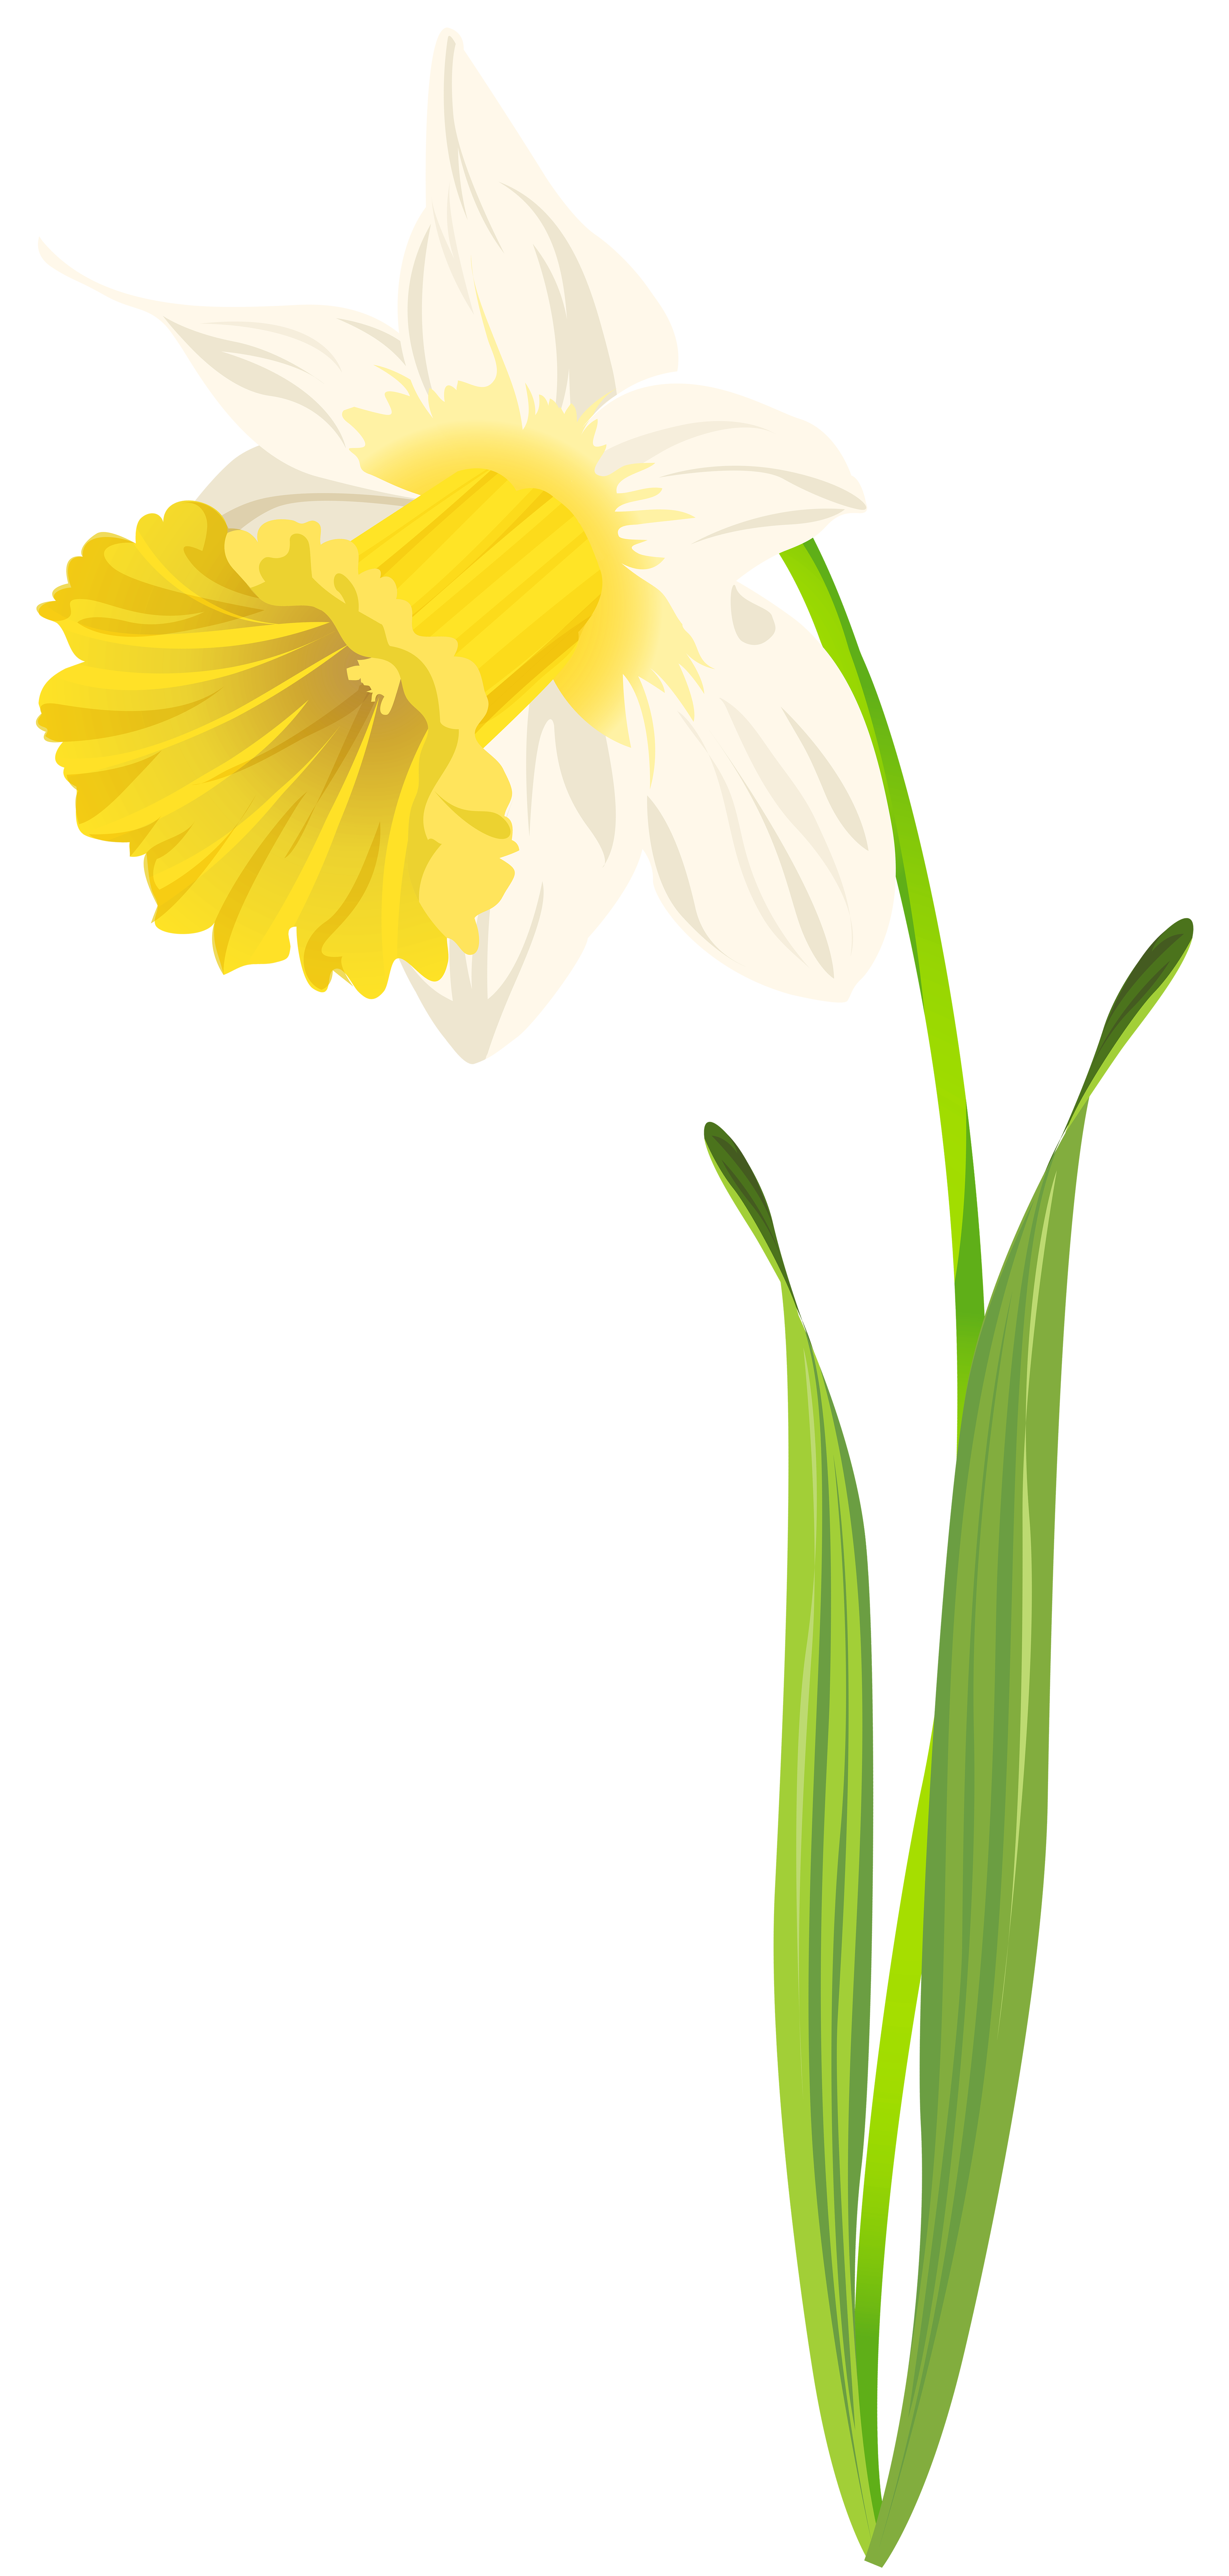 black and white download Png clip art image. Daffodil clipart.